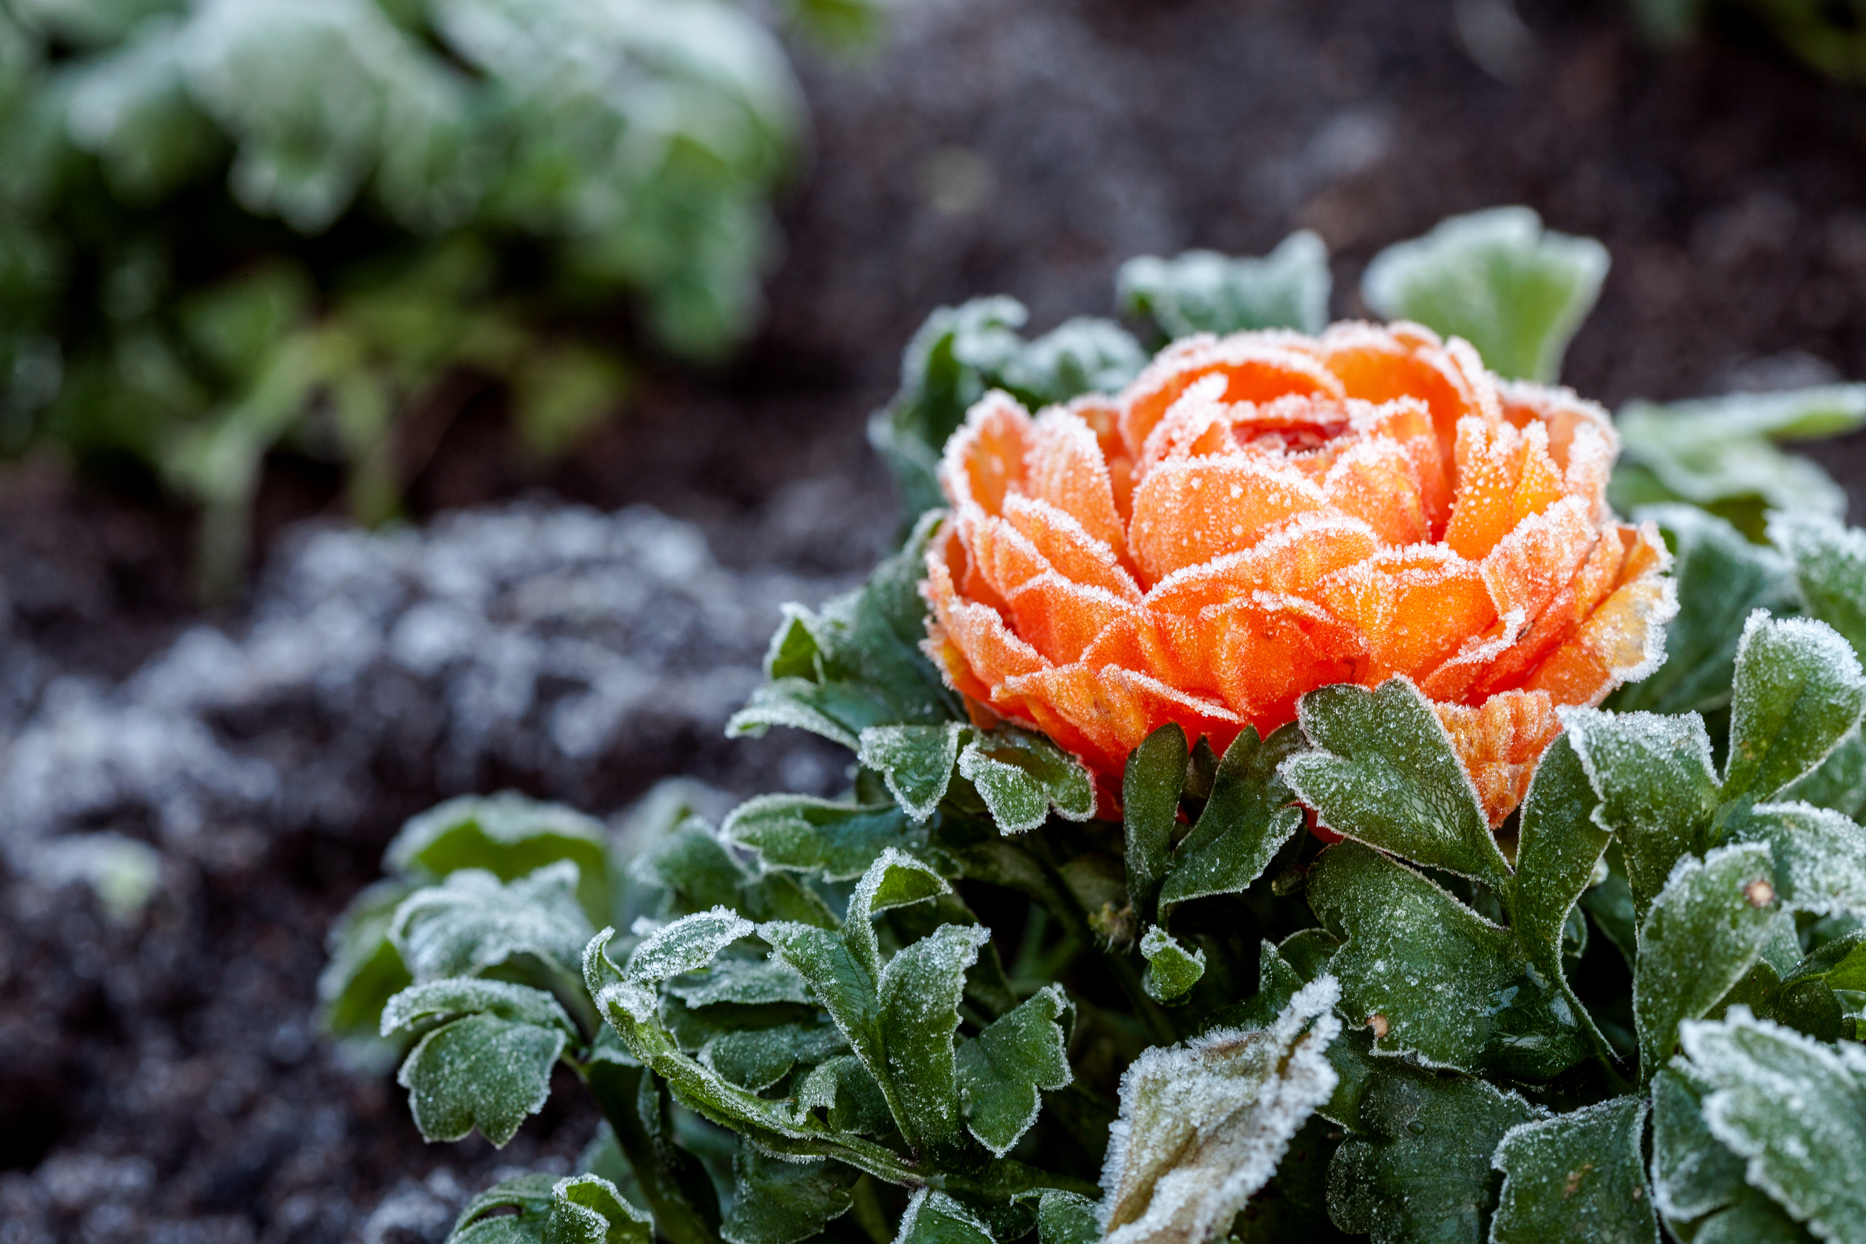 frost-covered orange rose